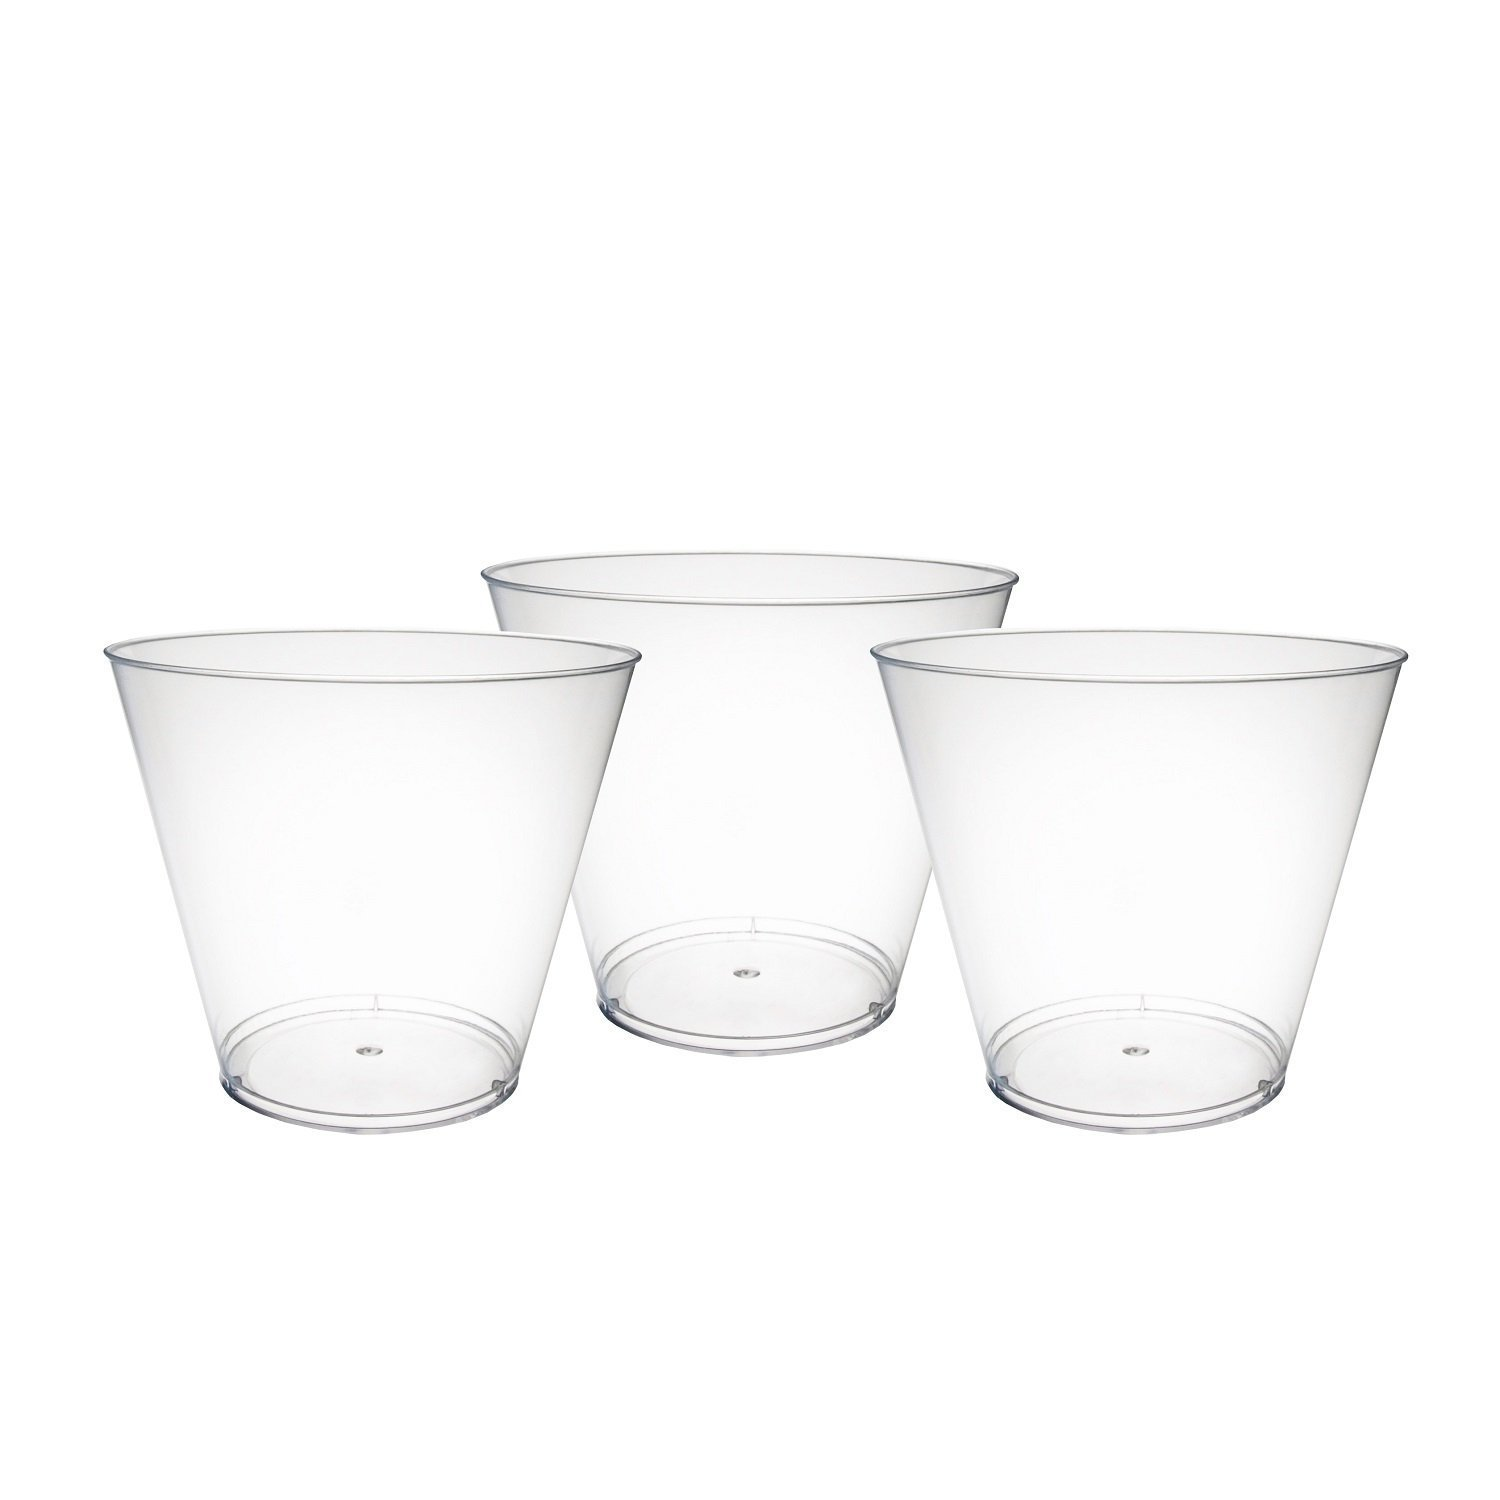 Party Essentials 100 Piece Hard Plastic, Party Cups/Old Fashioned Tumblers, 9 oz., Clear